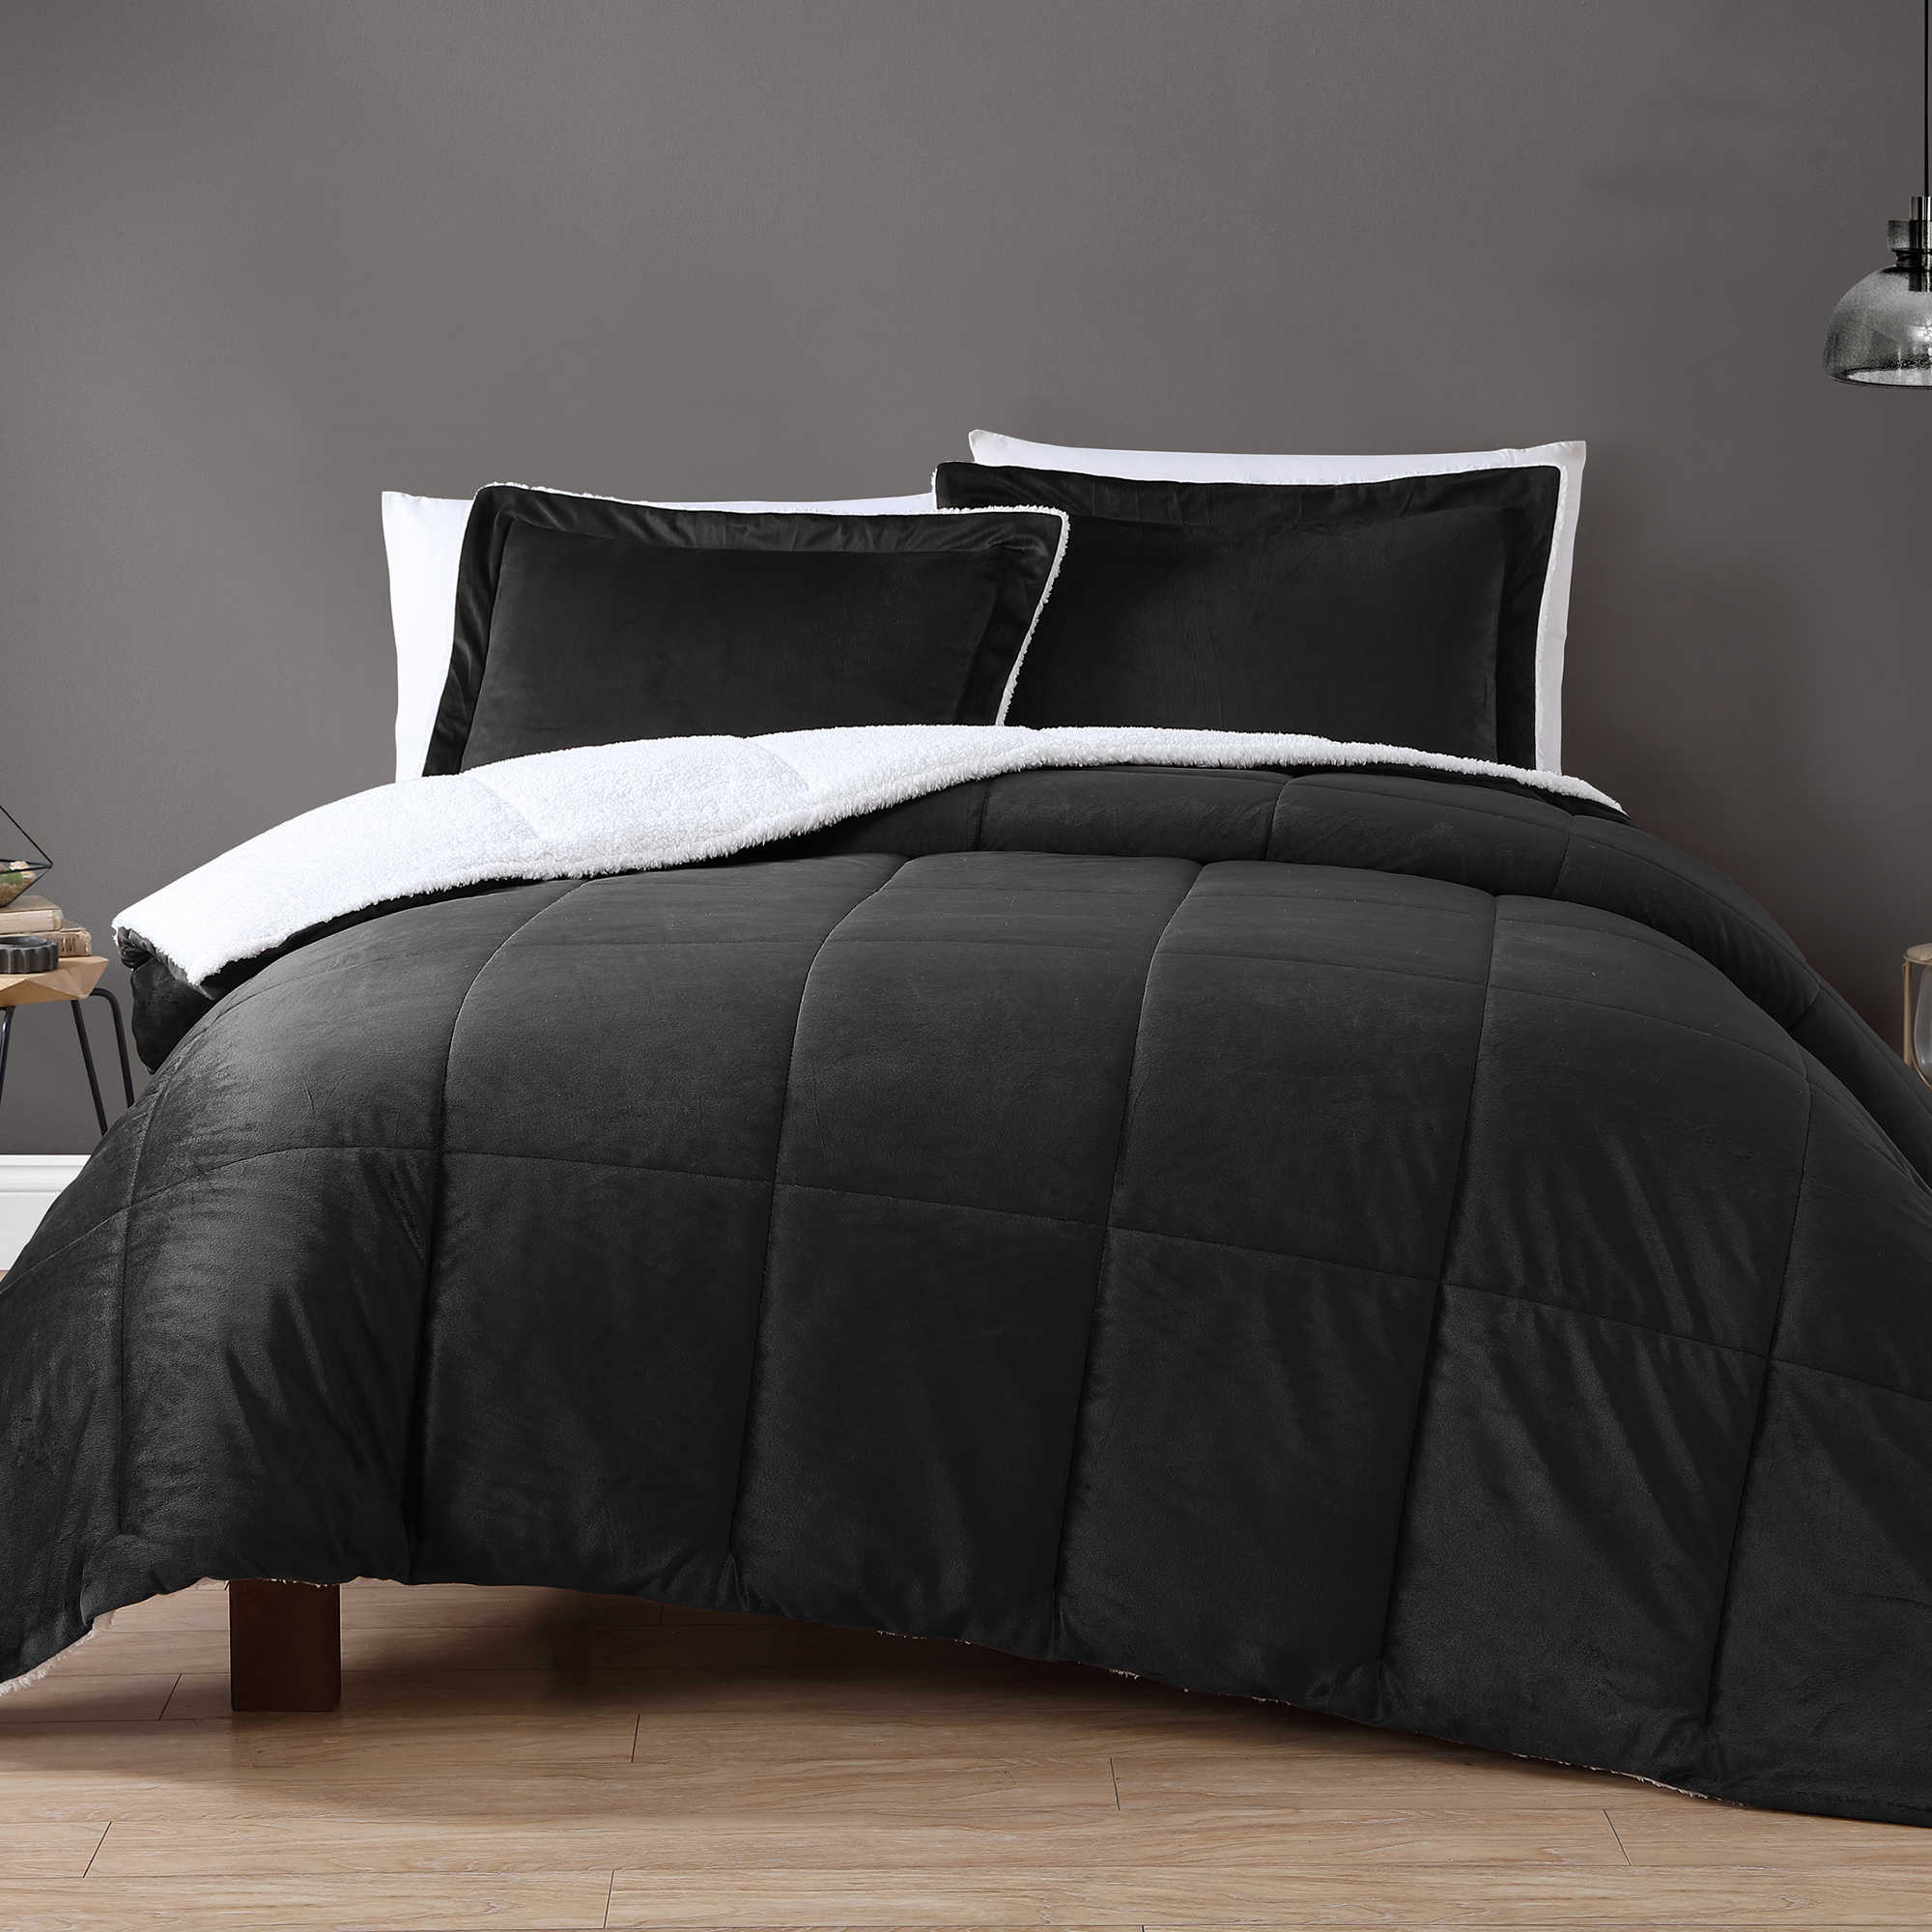 VCNY Velvet and Sherpa Comforter Set